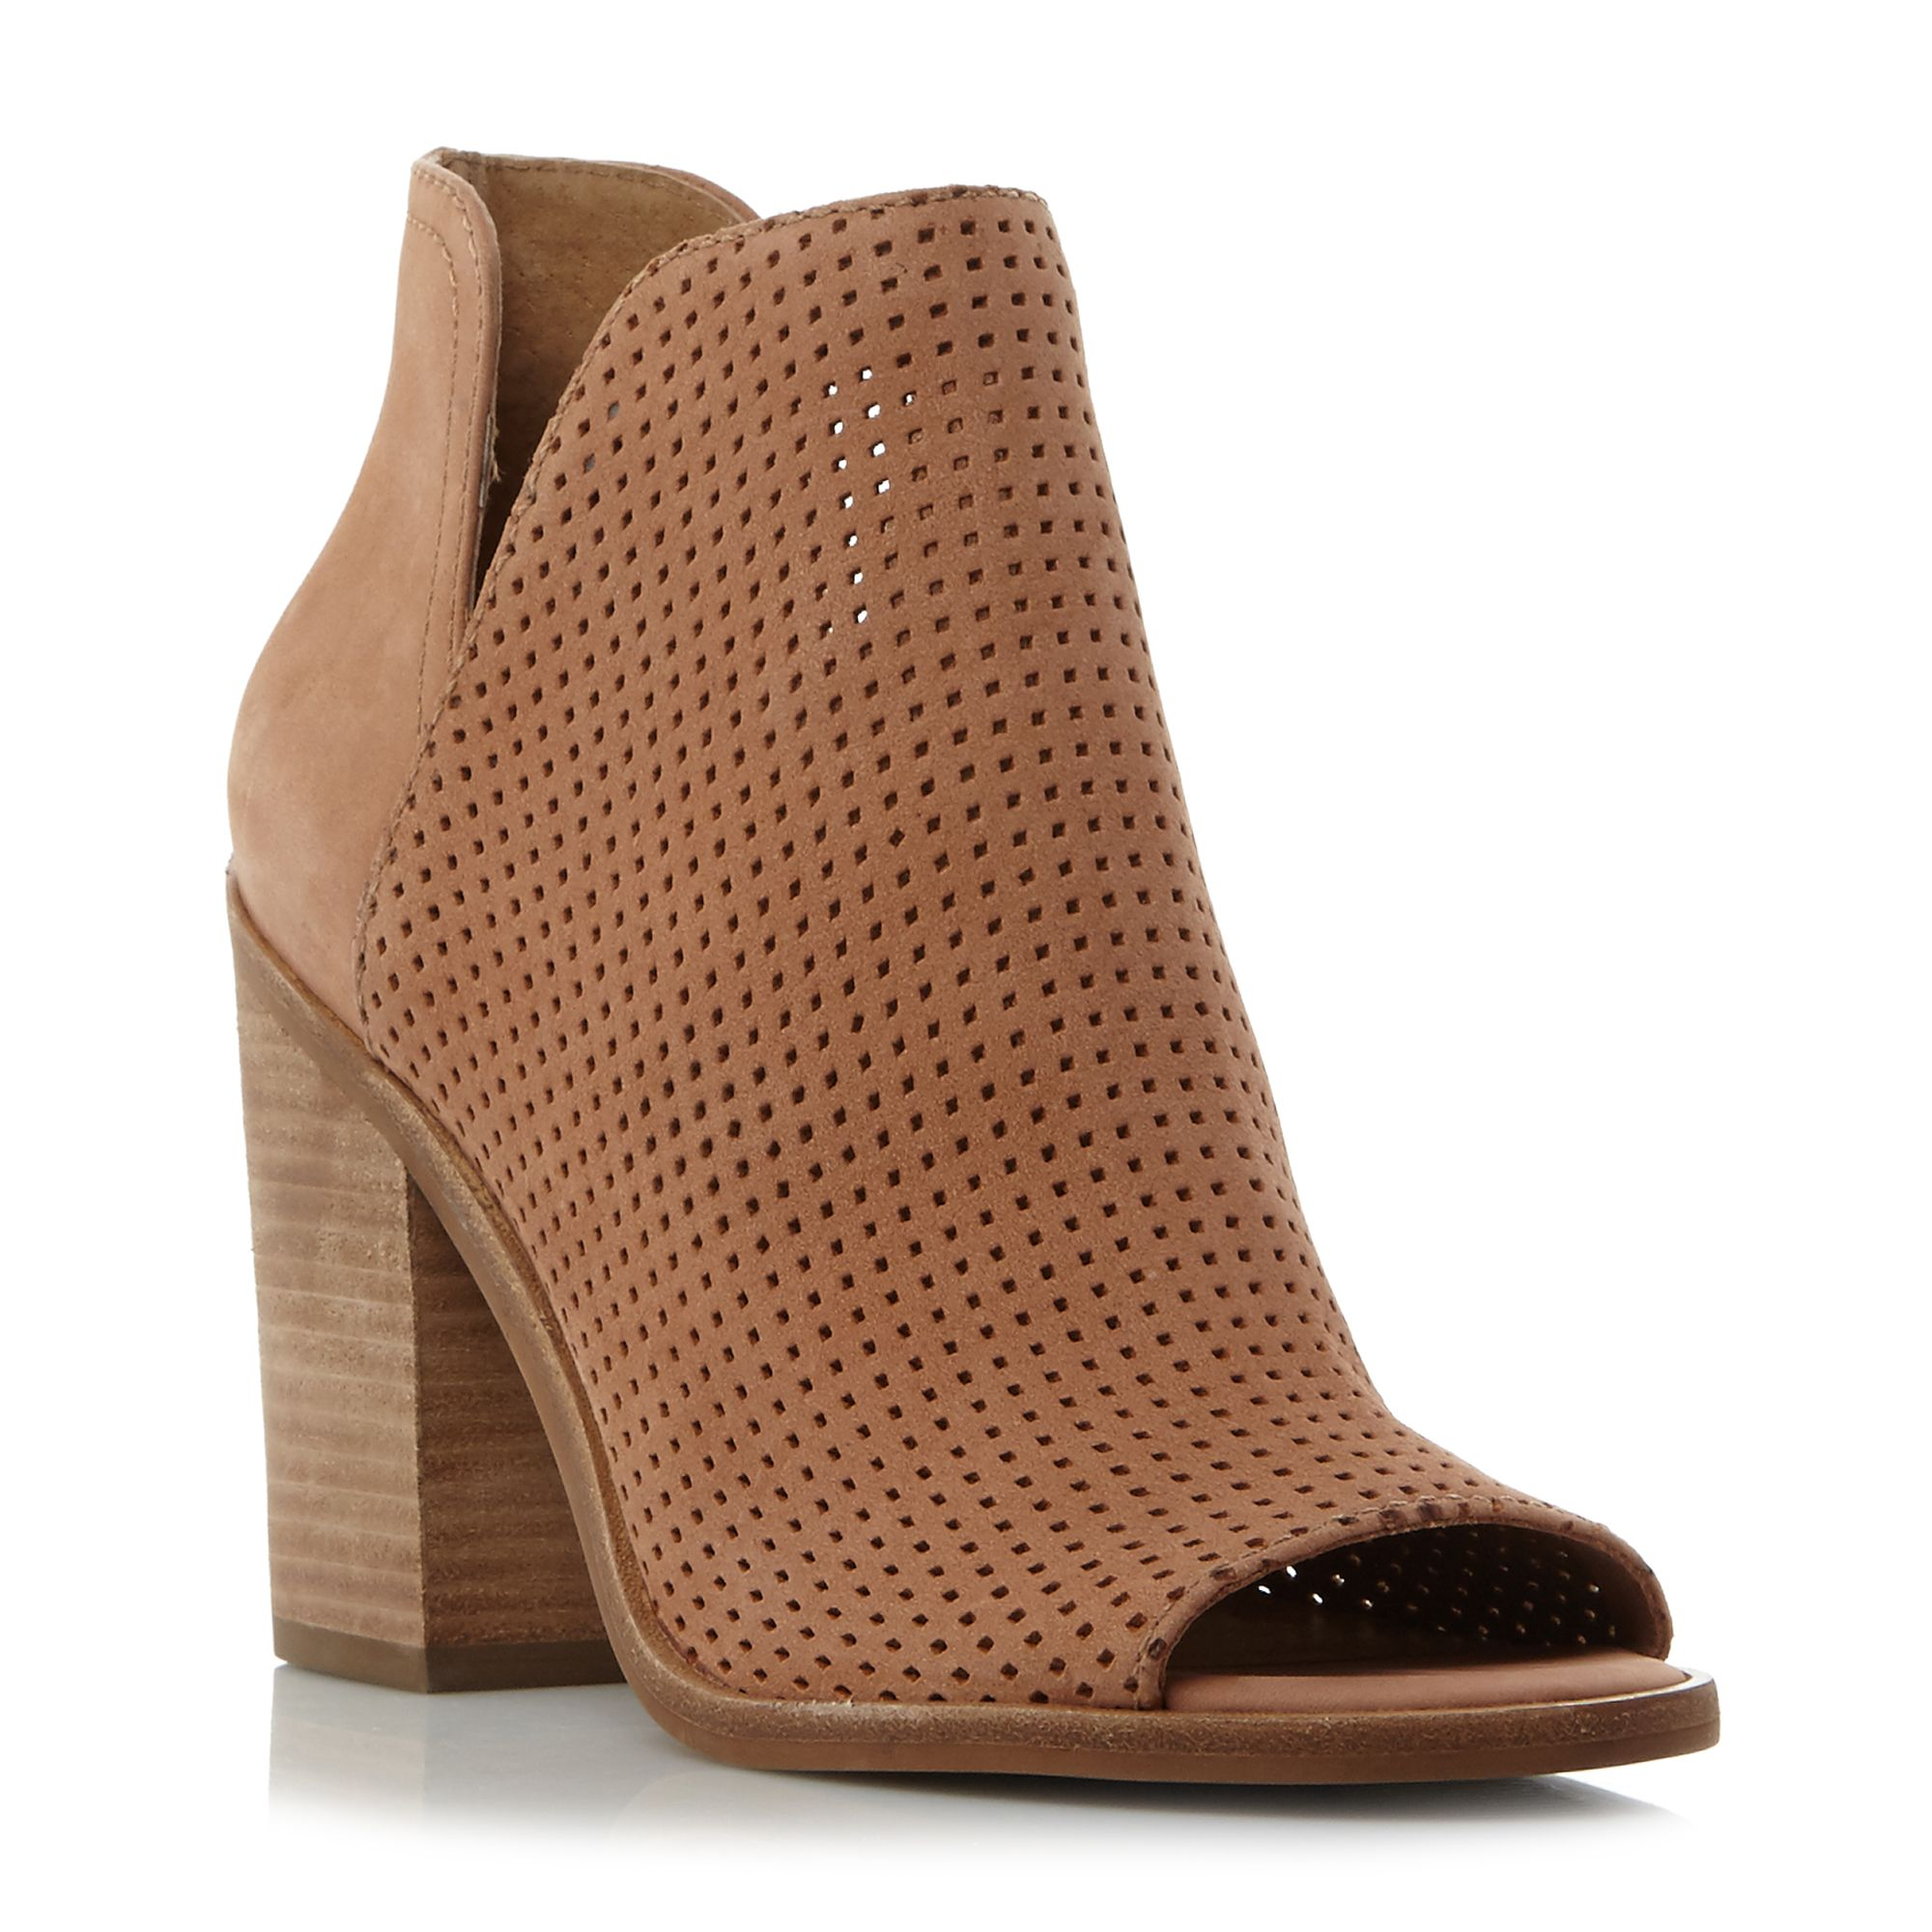 Steve Madden Tala sm perforated open toe ankle boots Brown